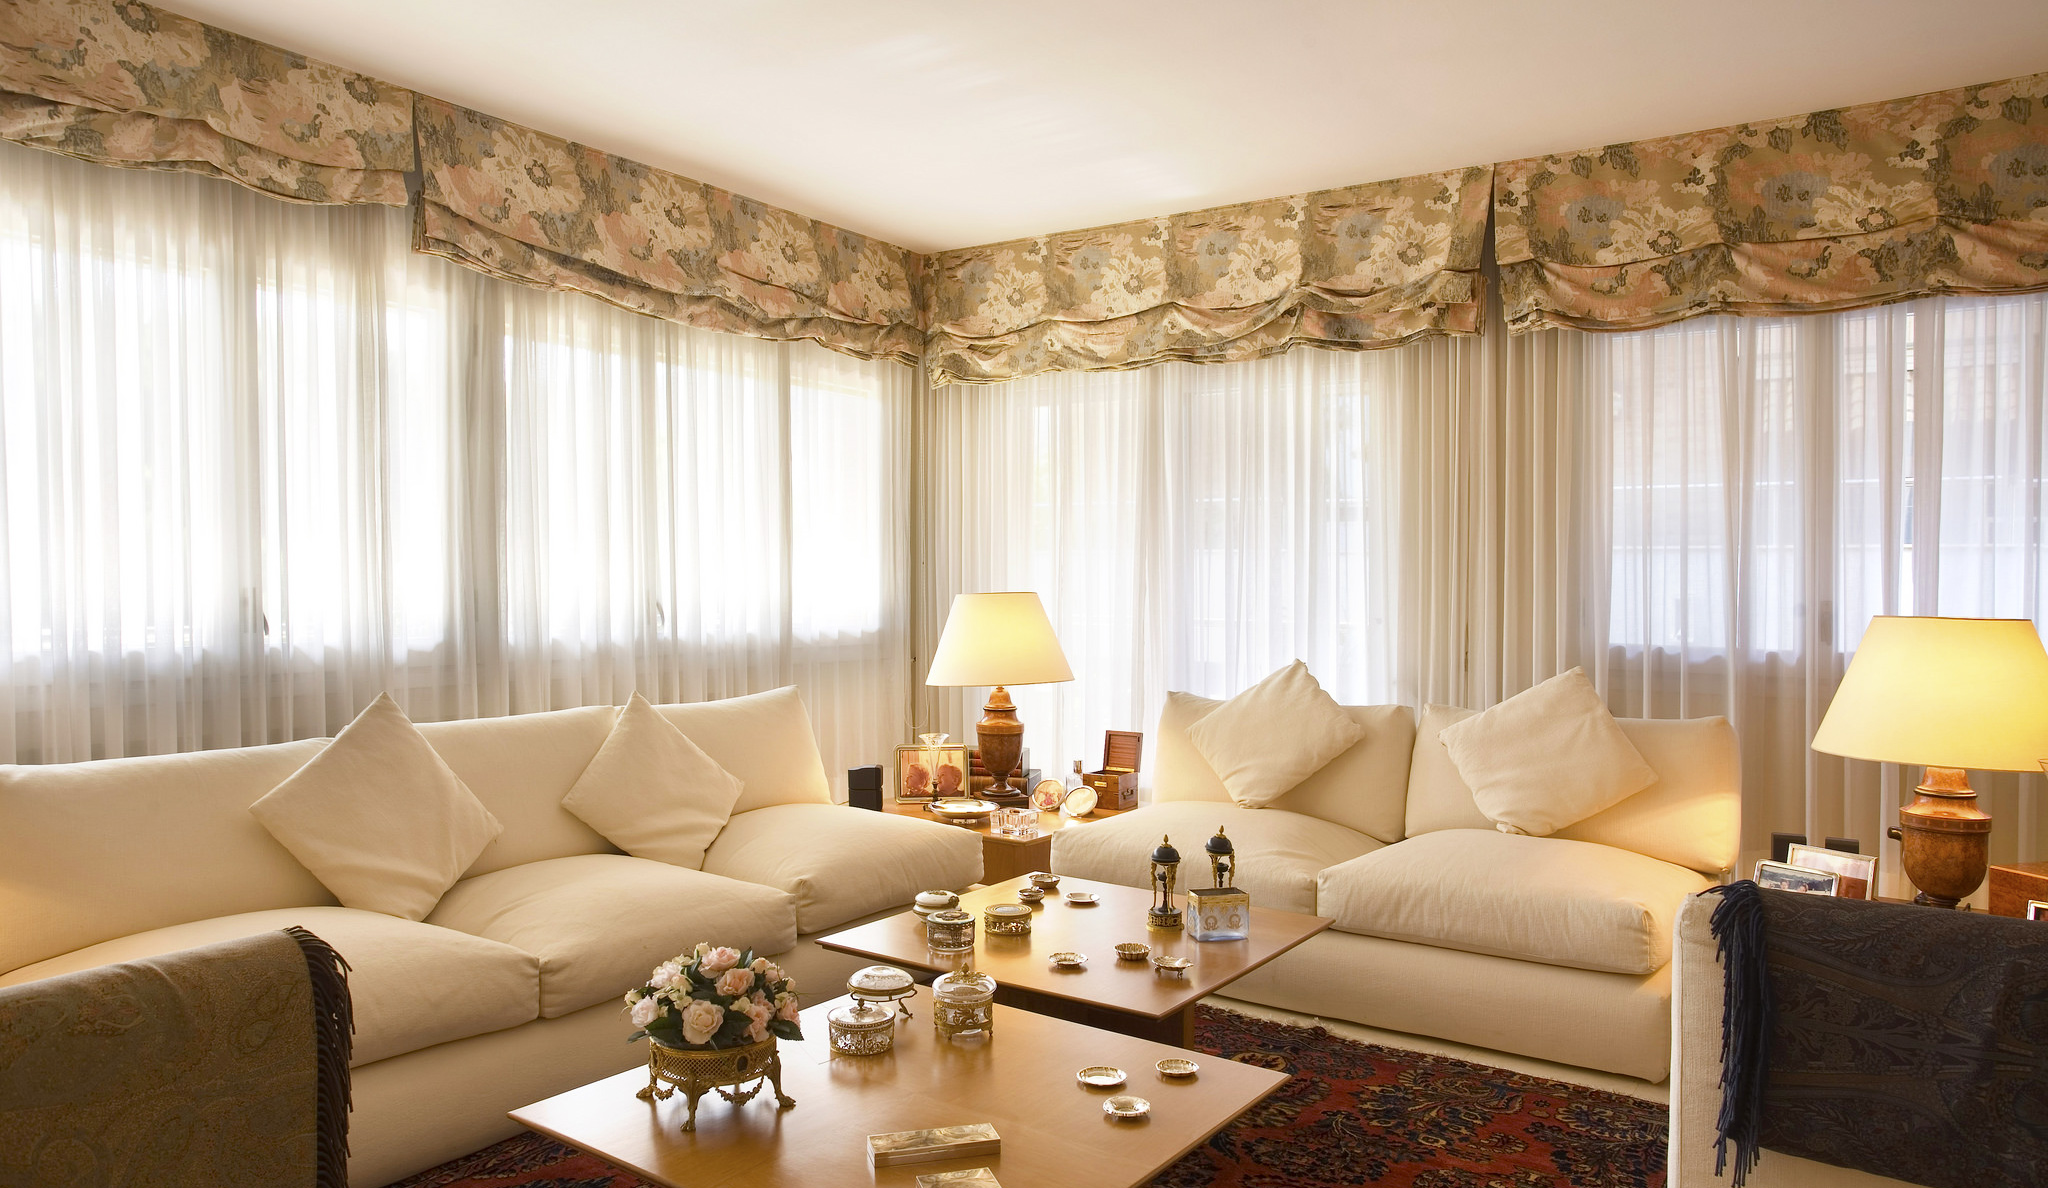 Tips for Choosing Living Room Curtain | Roy Home Design on Living Room Drapes Ideas  id=98865